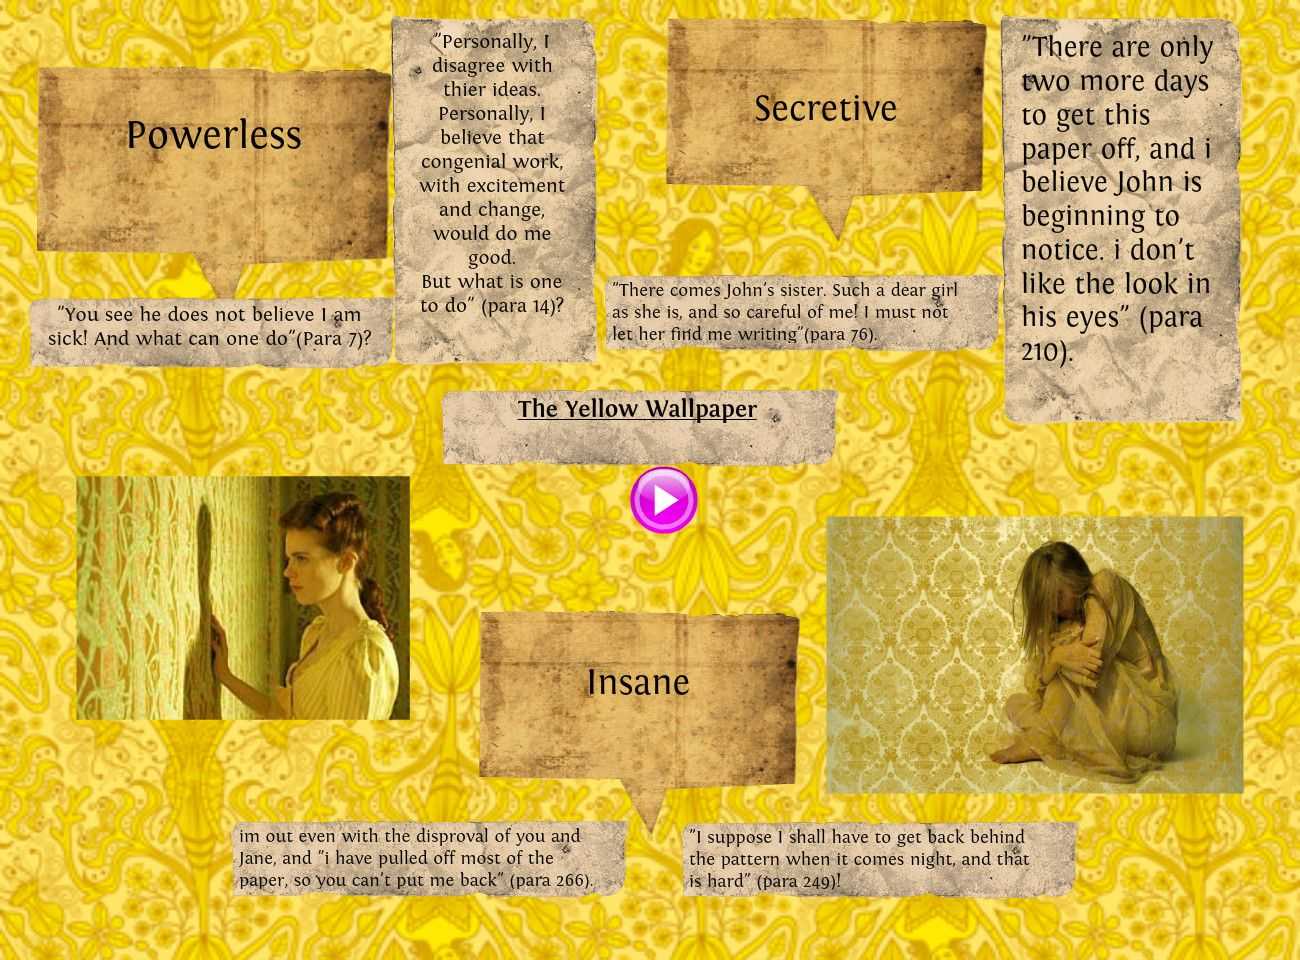 A Tale Of Two Cities Essay Yellow Wallpaper Essay Essays And Criticism On Charlotte Perkins Gilmans  The Yellow Wallpaper  Critical Essays Gm Foods Essay also Persuasive Essay College Examples The Yellow Wallpaper Short Story Analysis  Best Games Wallpapers  Essay Fahrenheit 451